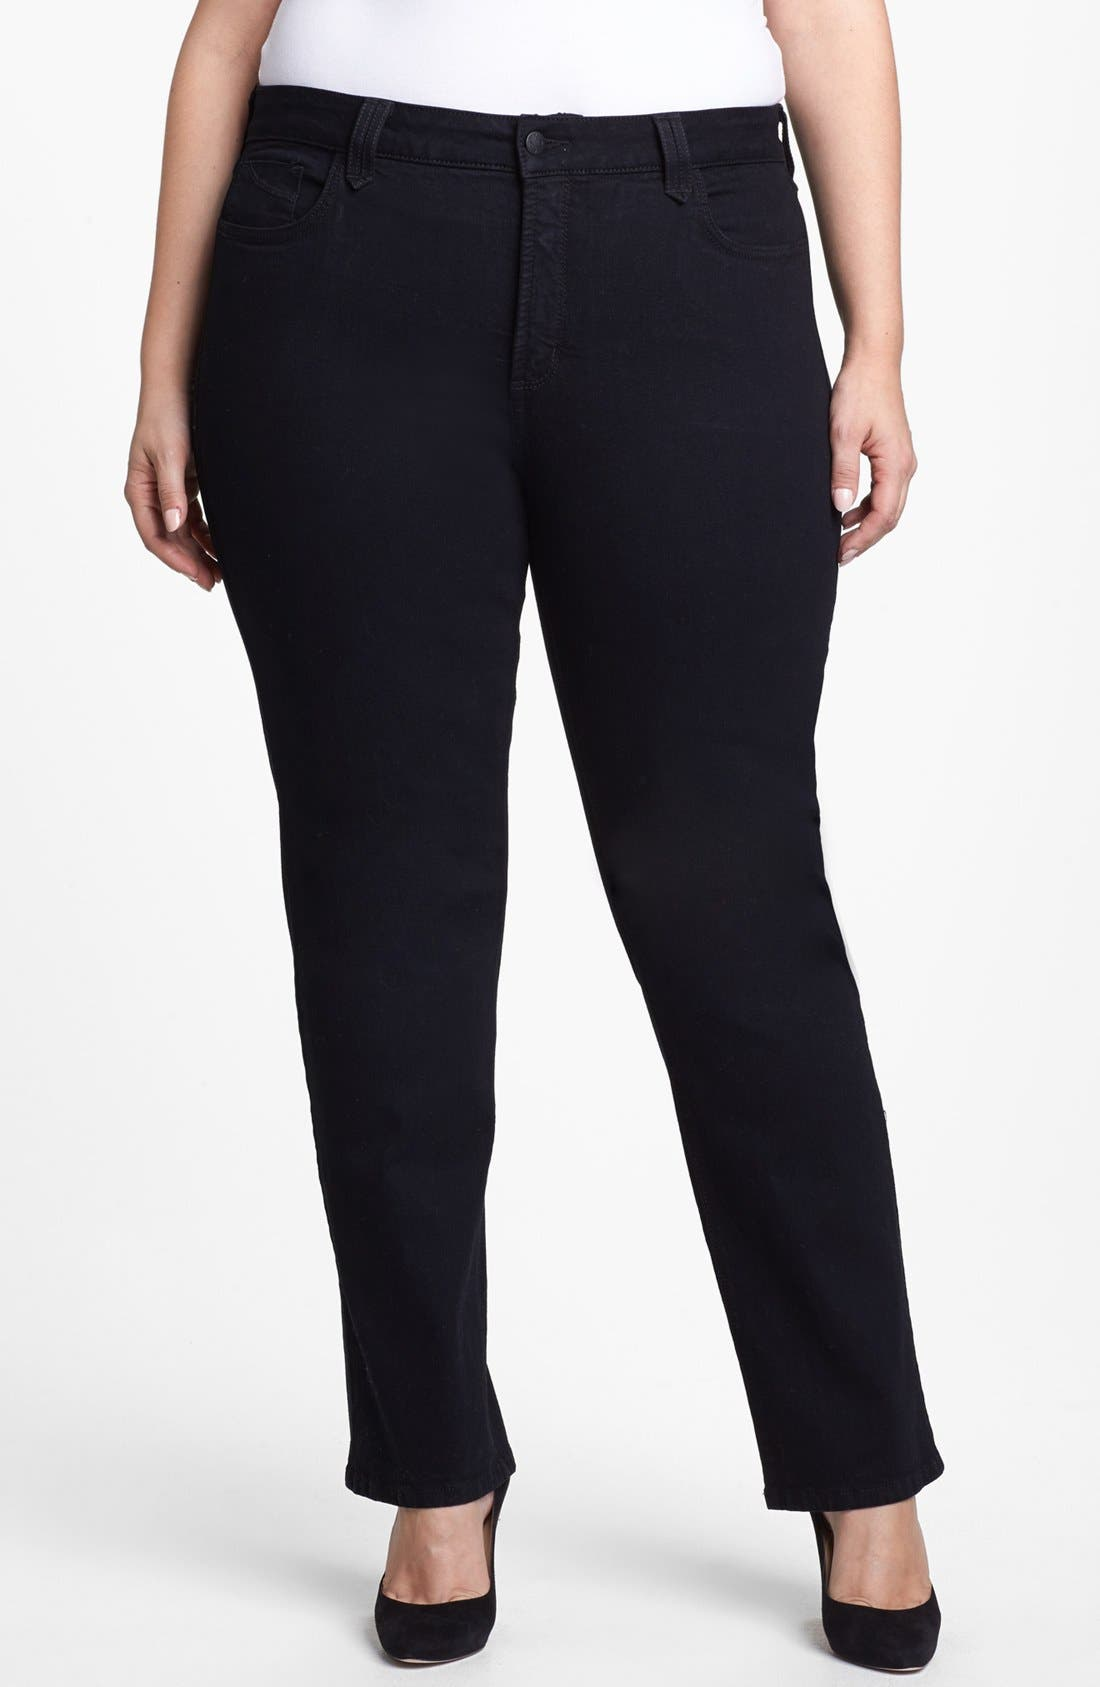 Alternate Image 1 Selected - NYDJ 'Hayden' Embroidered Pocket Stretch Straight Leg Jeans (Black) (Petite Plus Size)